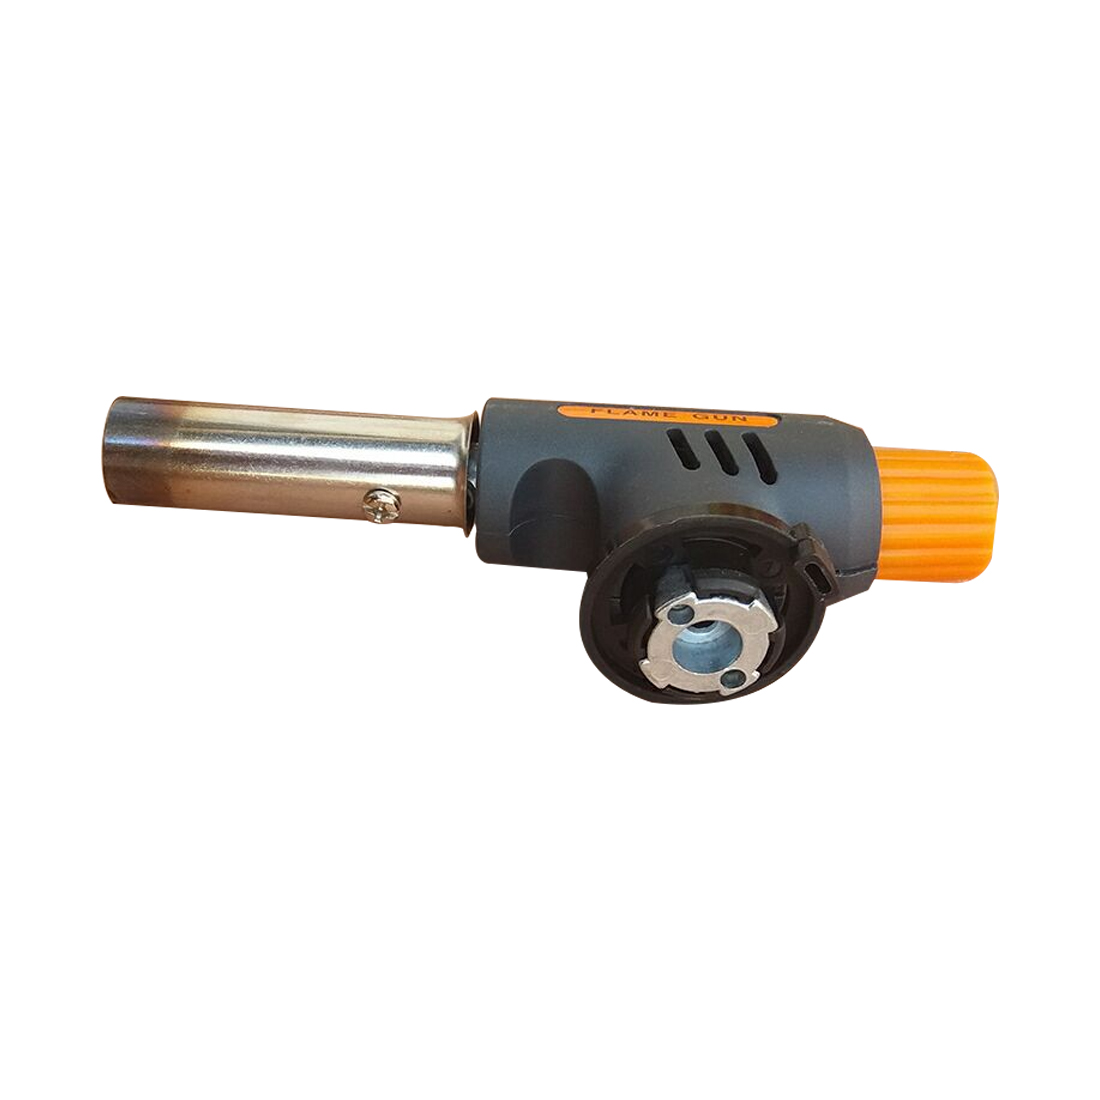 Gas Torch Flamethrower Butane Burner Automatic Ignition Baking Welding BBQ Camping Outdoor Hiking Fire Flame Gun